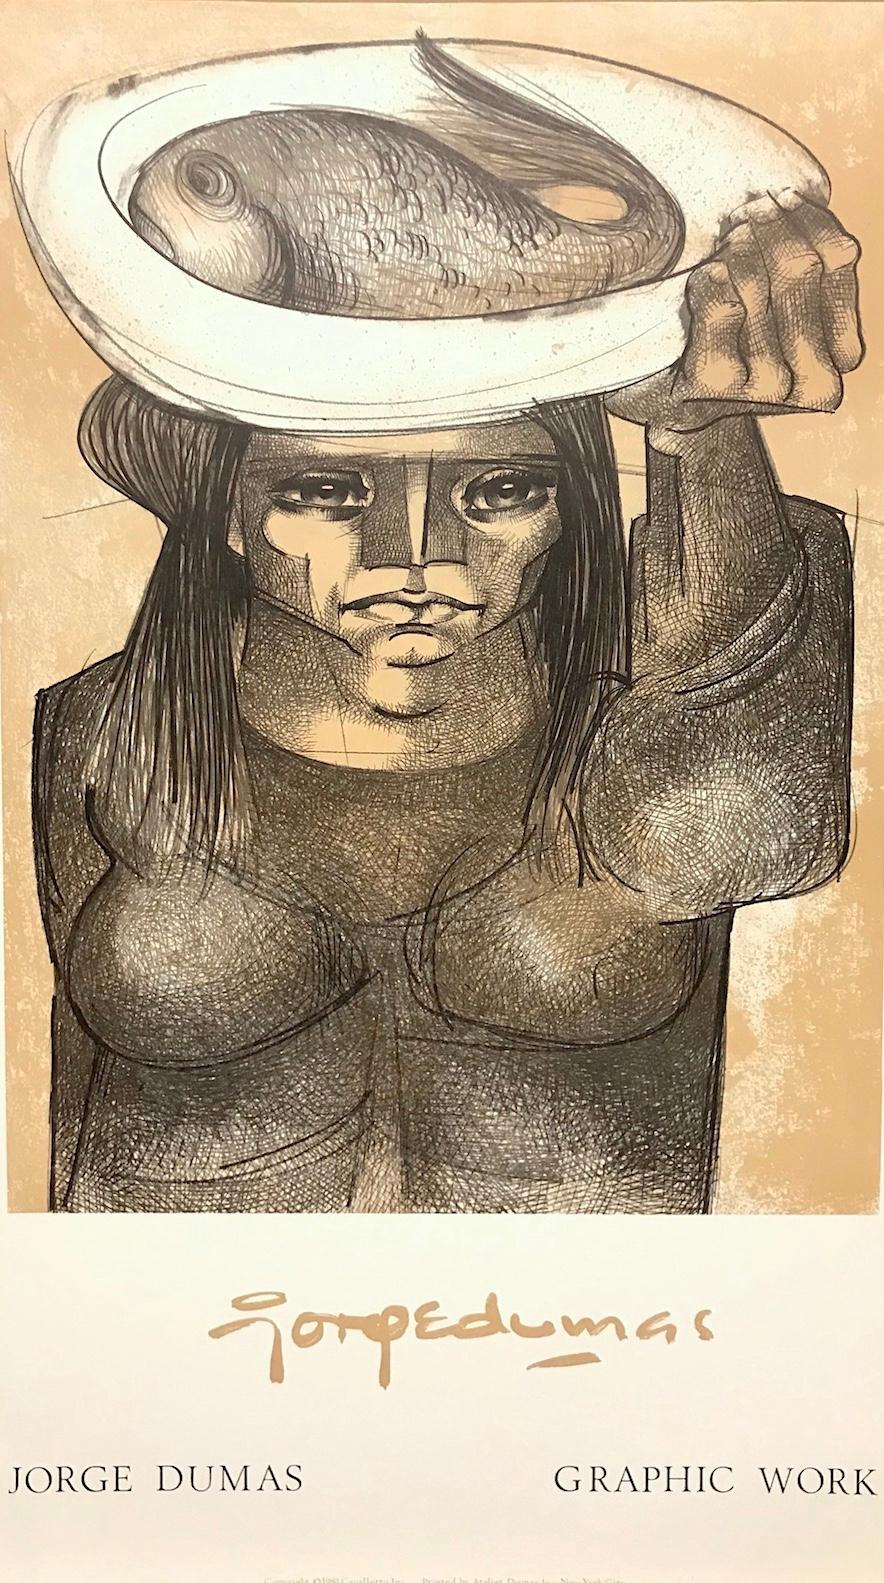 WOMAN CARRYING A FISH Lithograph Art Poster, Female Portrait, Latin American